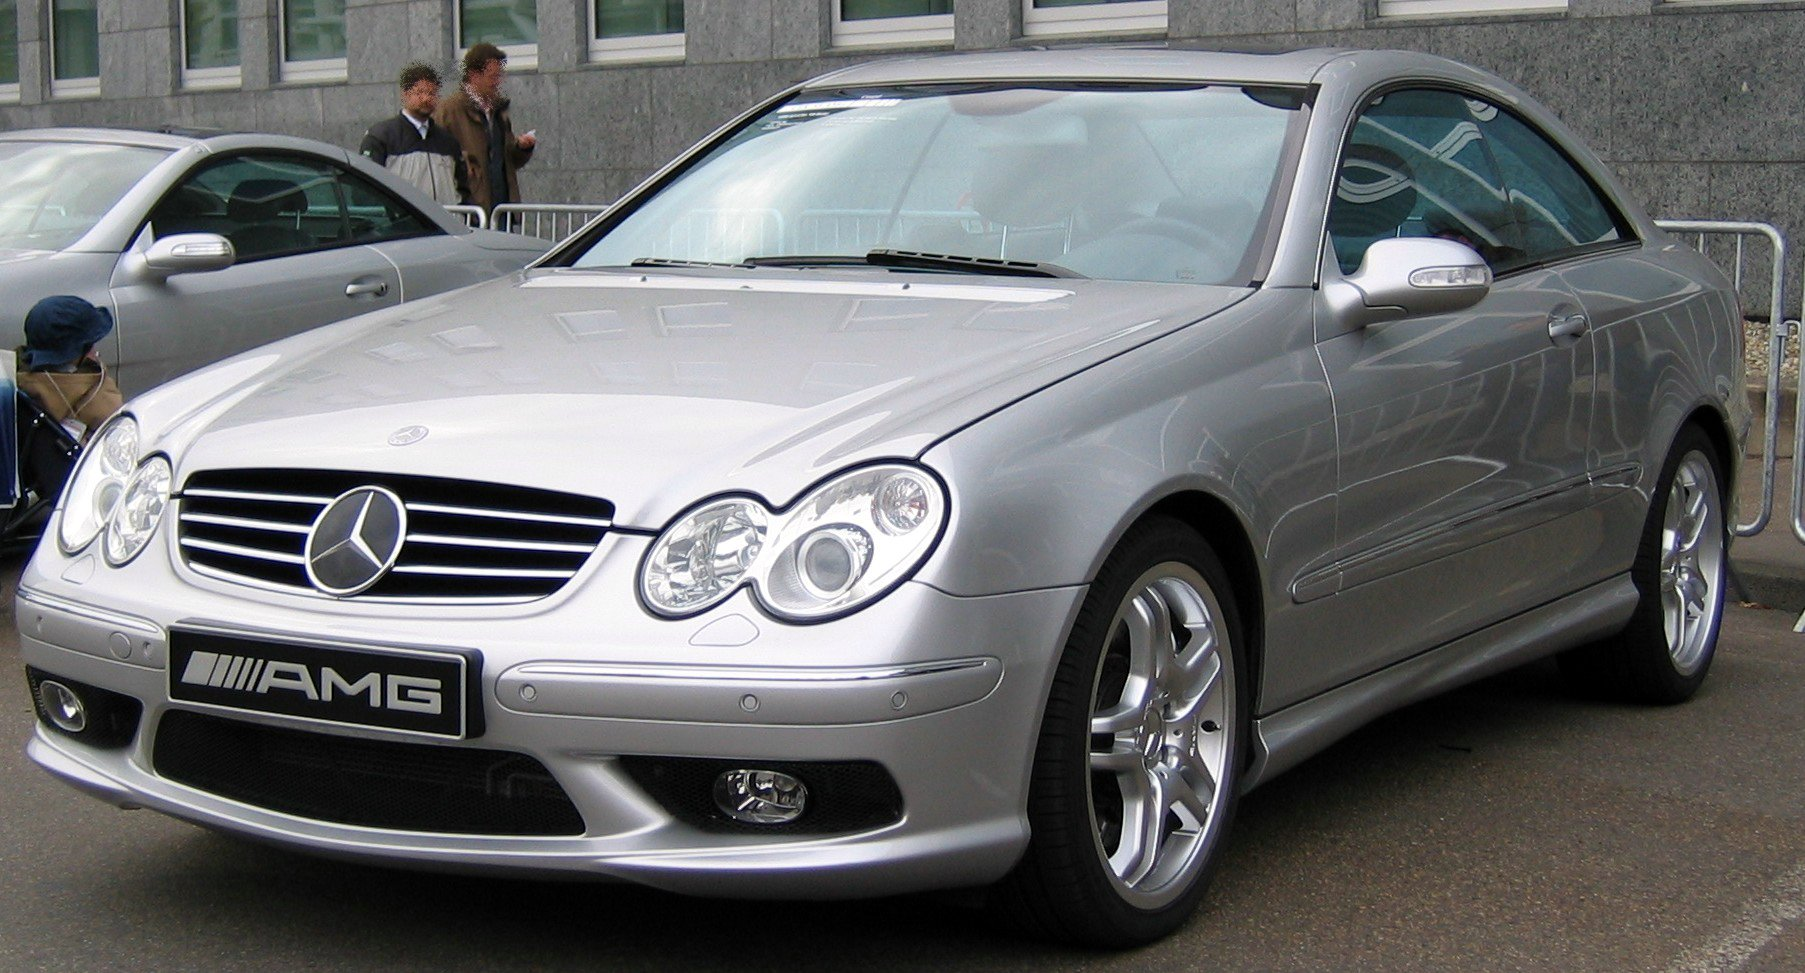 Mercedes-Benz CLK-Class - Wikipedia, the free encyclopedia